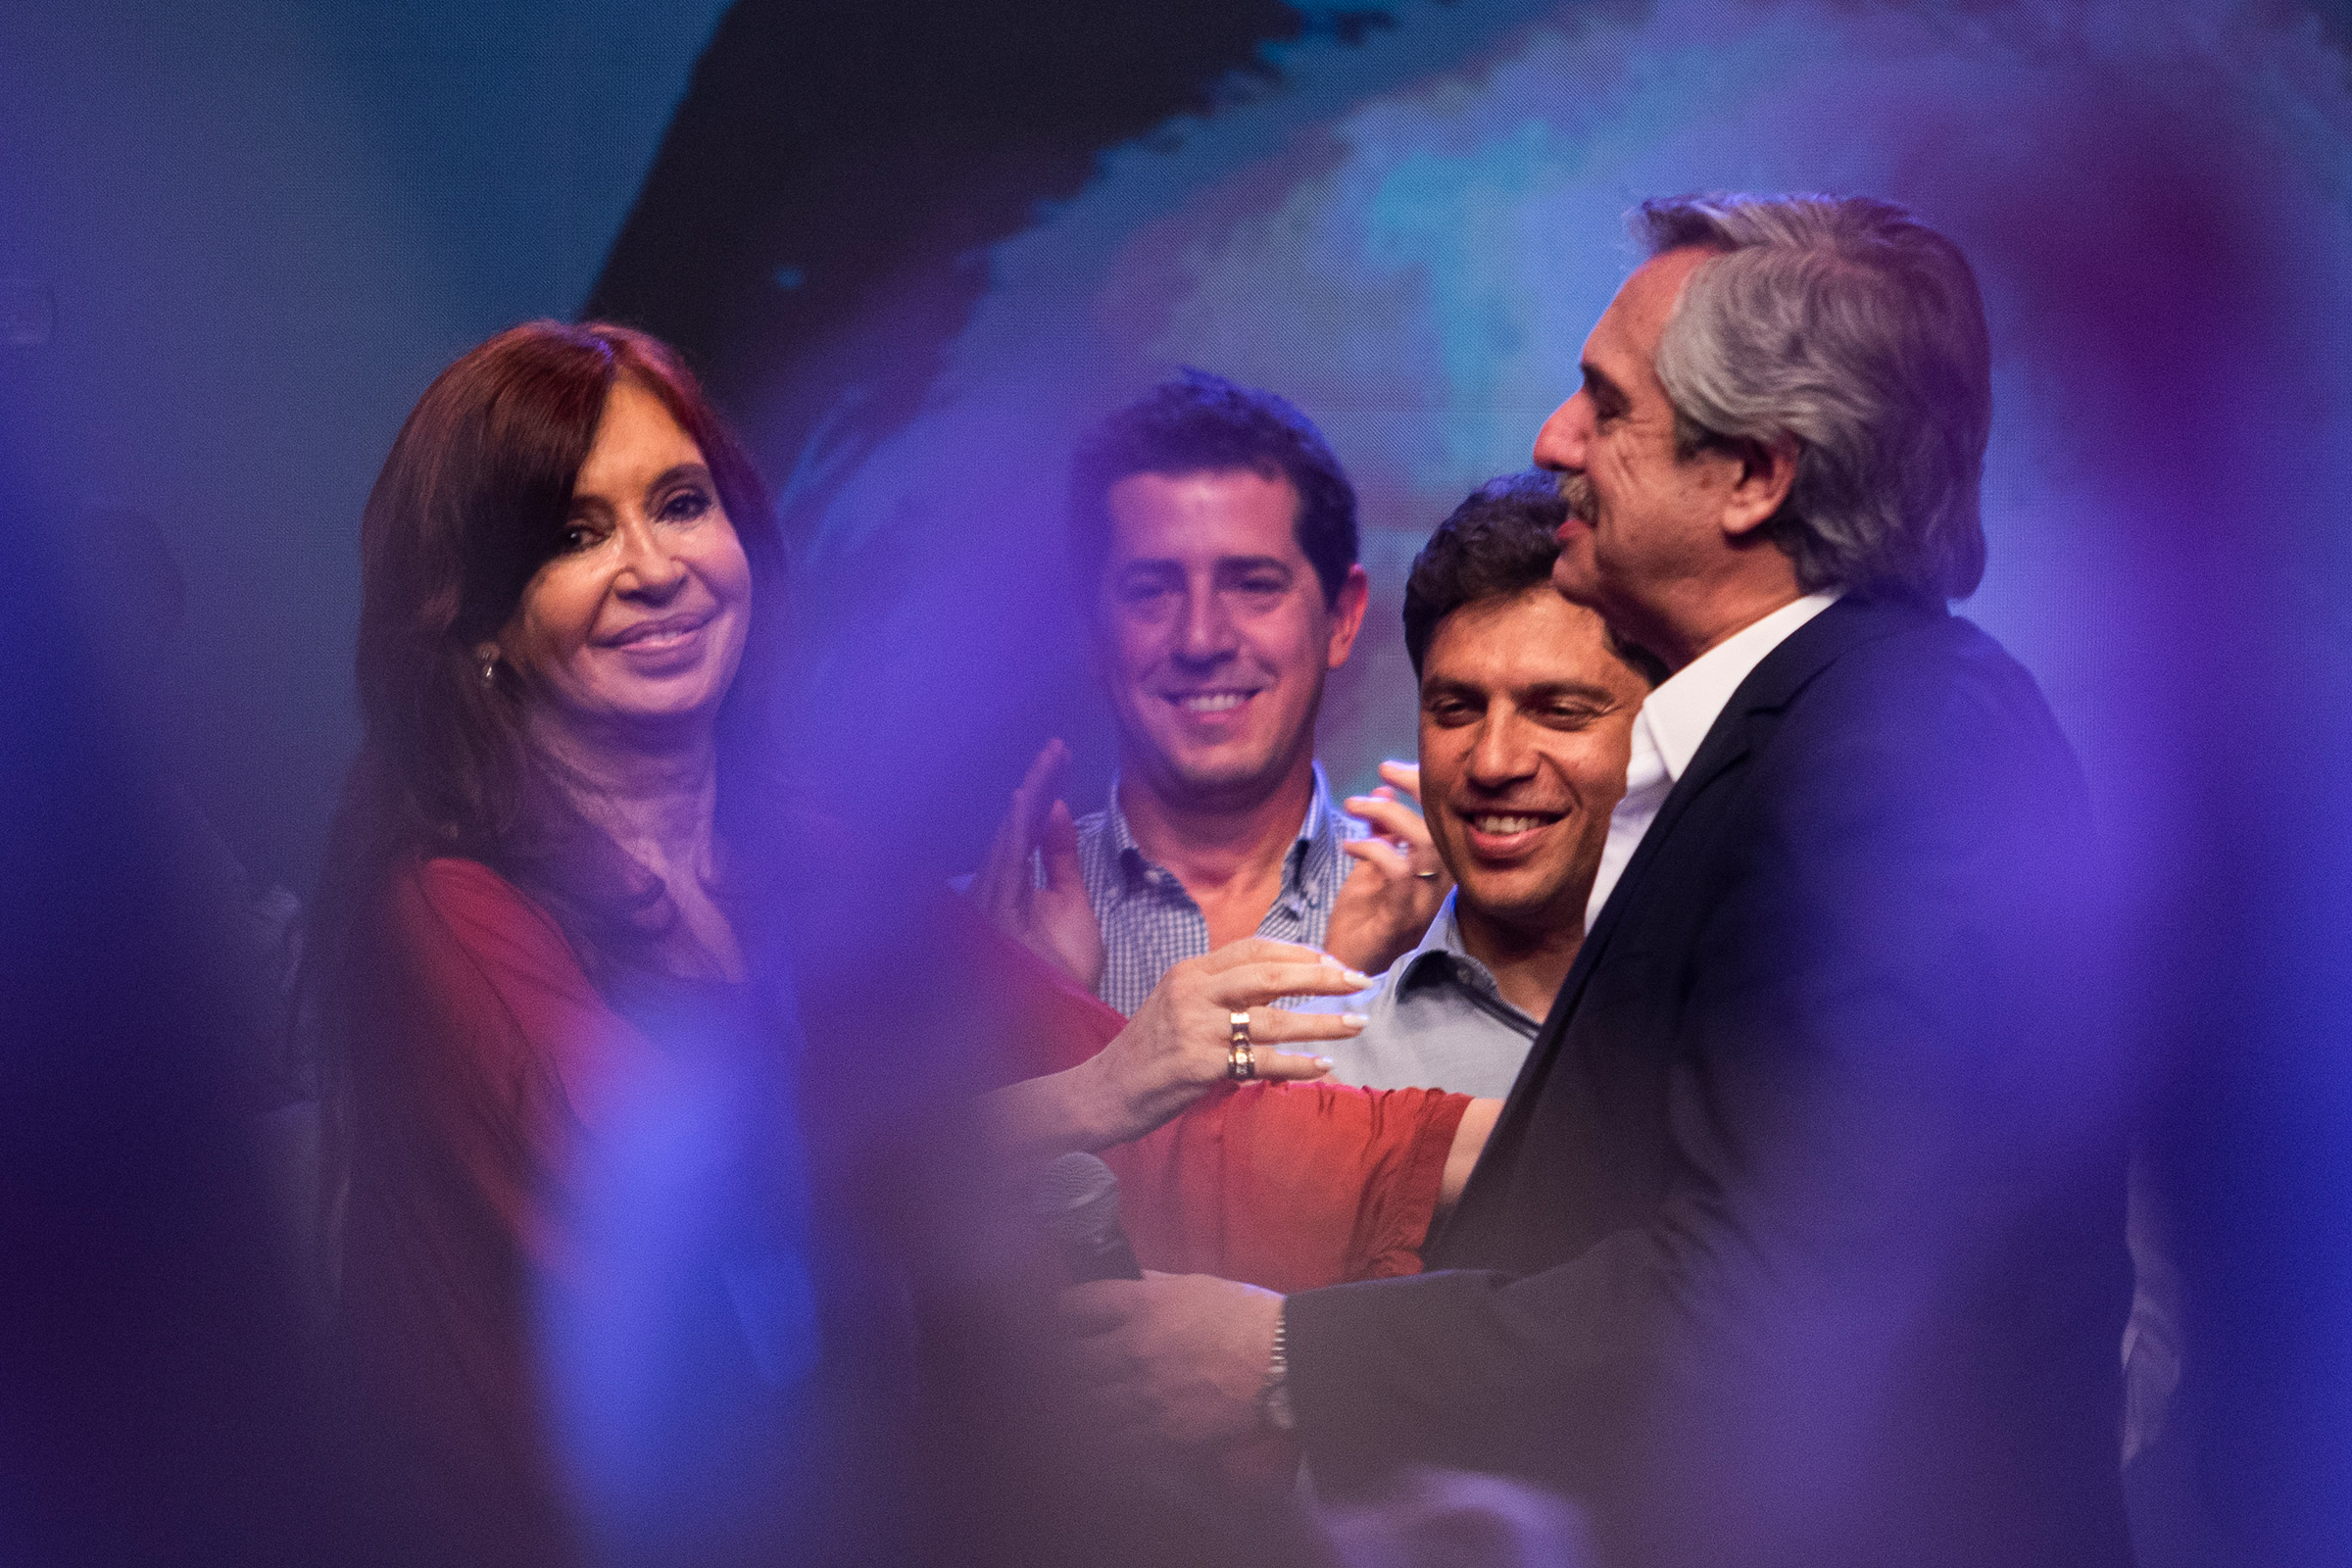 Newly elected President of Argentina Alberto Fernandez and his running mate Cristina Fernández de Kirchner stand on stage after winning in the presidential elections in Buenos Aires, on Oct. 27.